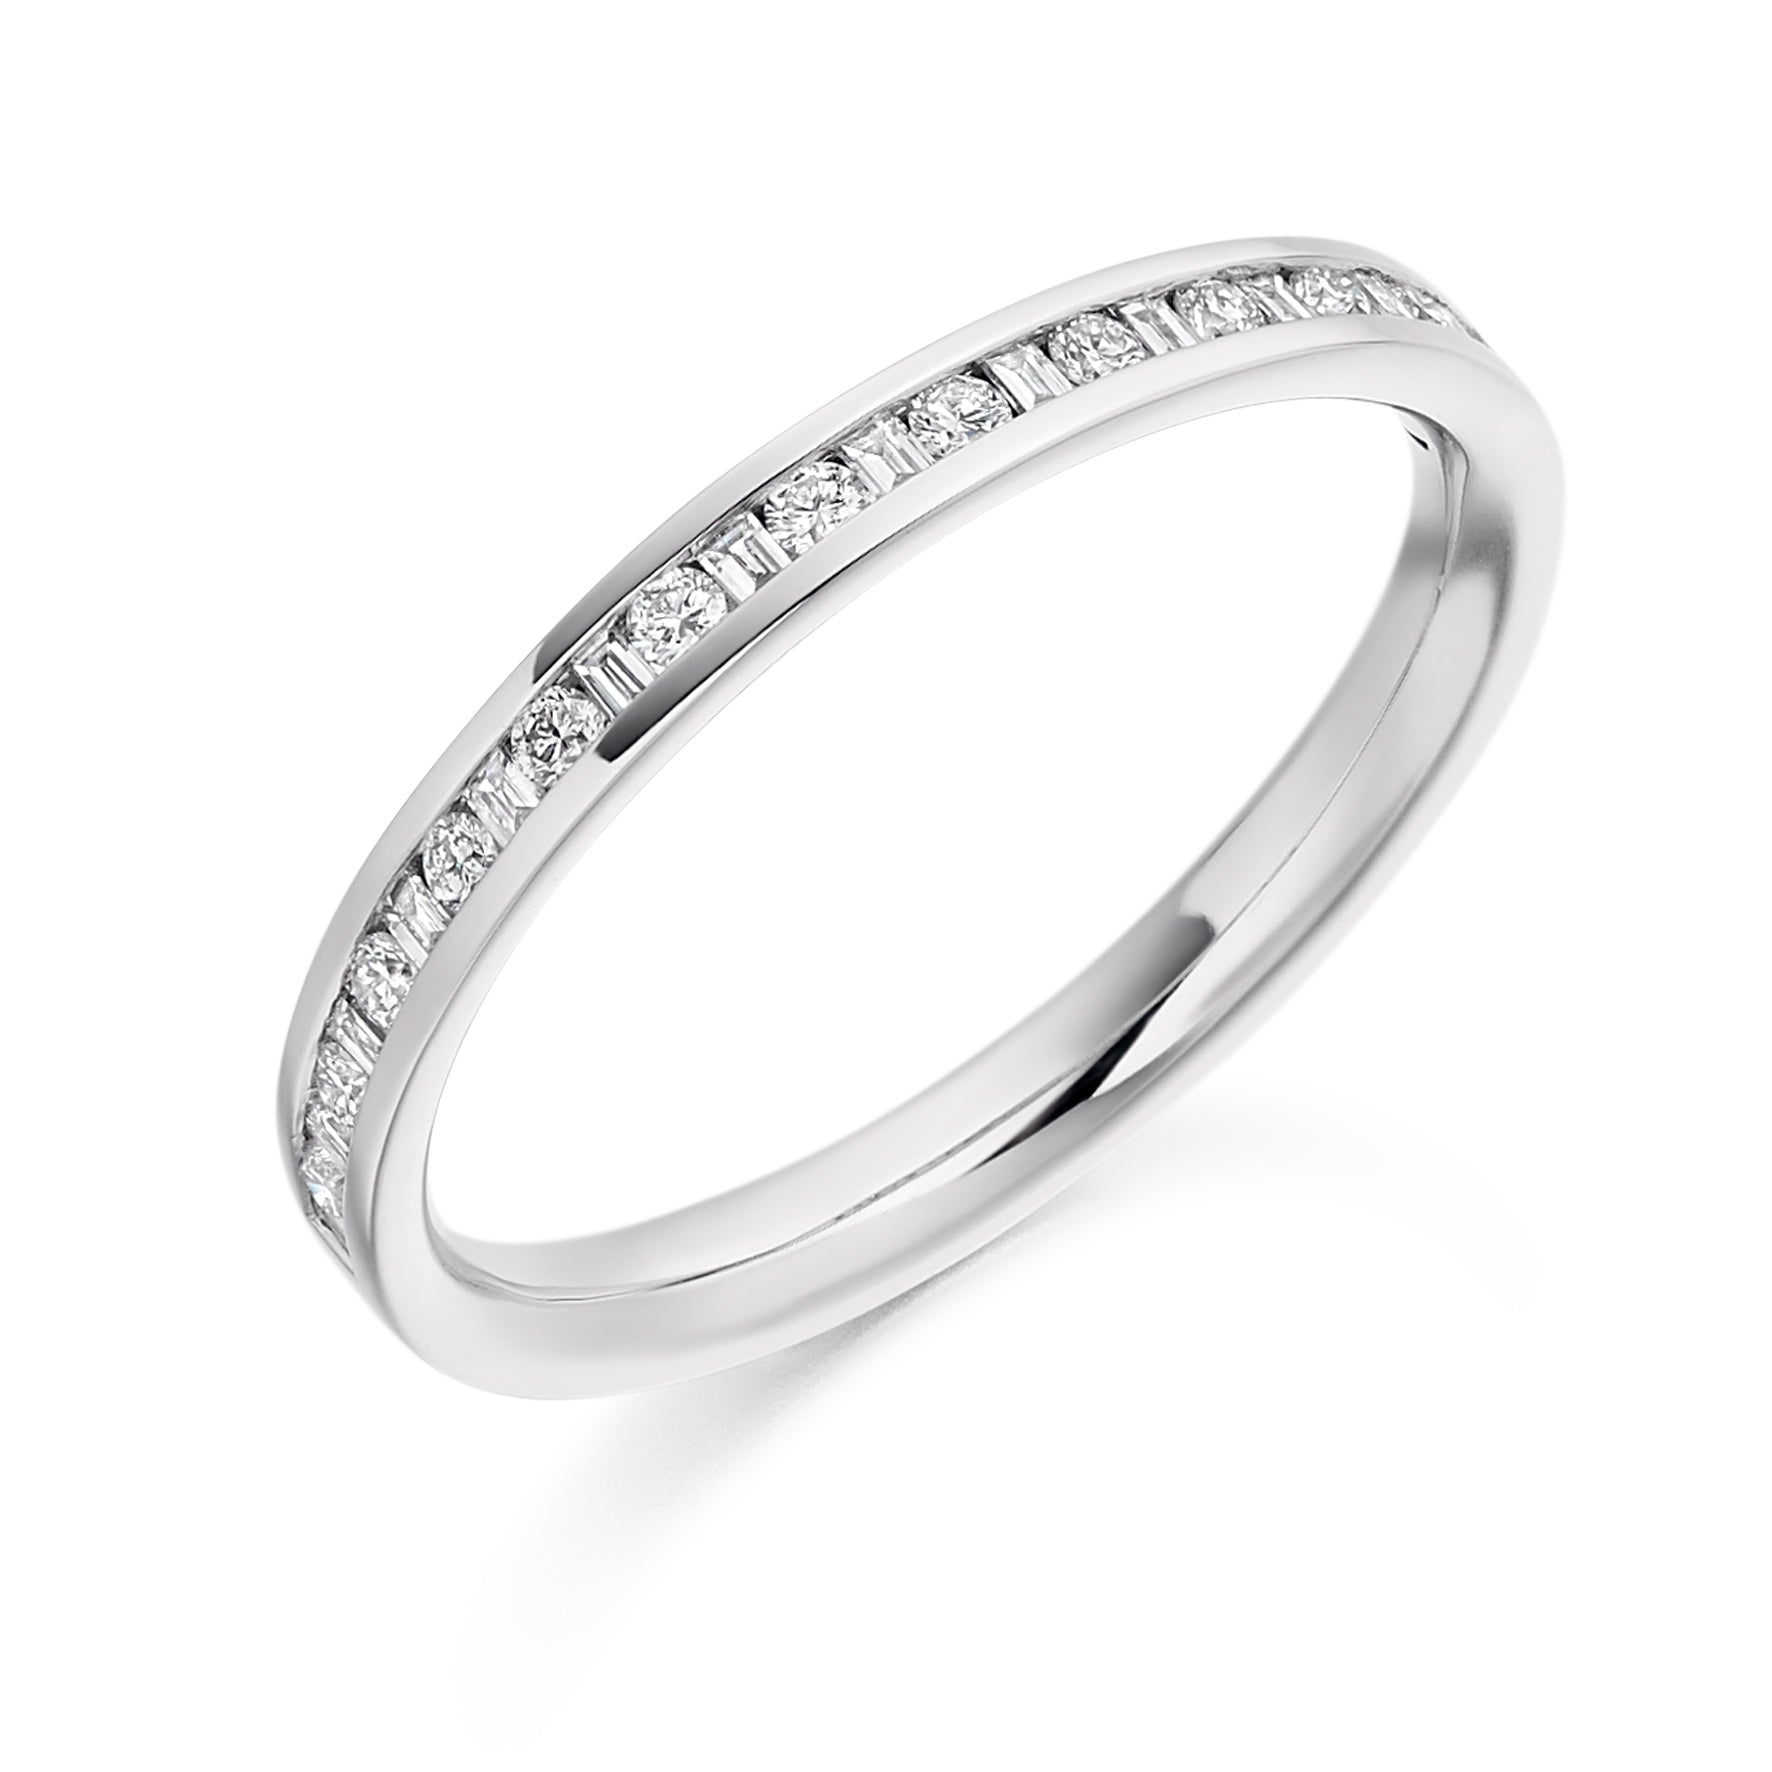 18ct White Gold 0.3ct Round Brilliant Cut and Baguette Cut Diamonds Vintage Wedding Ring